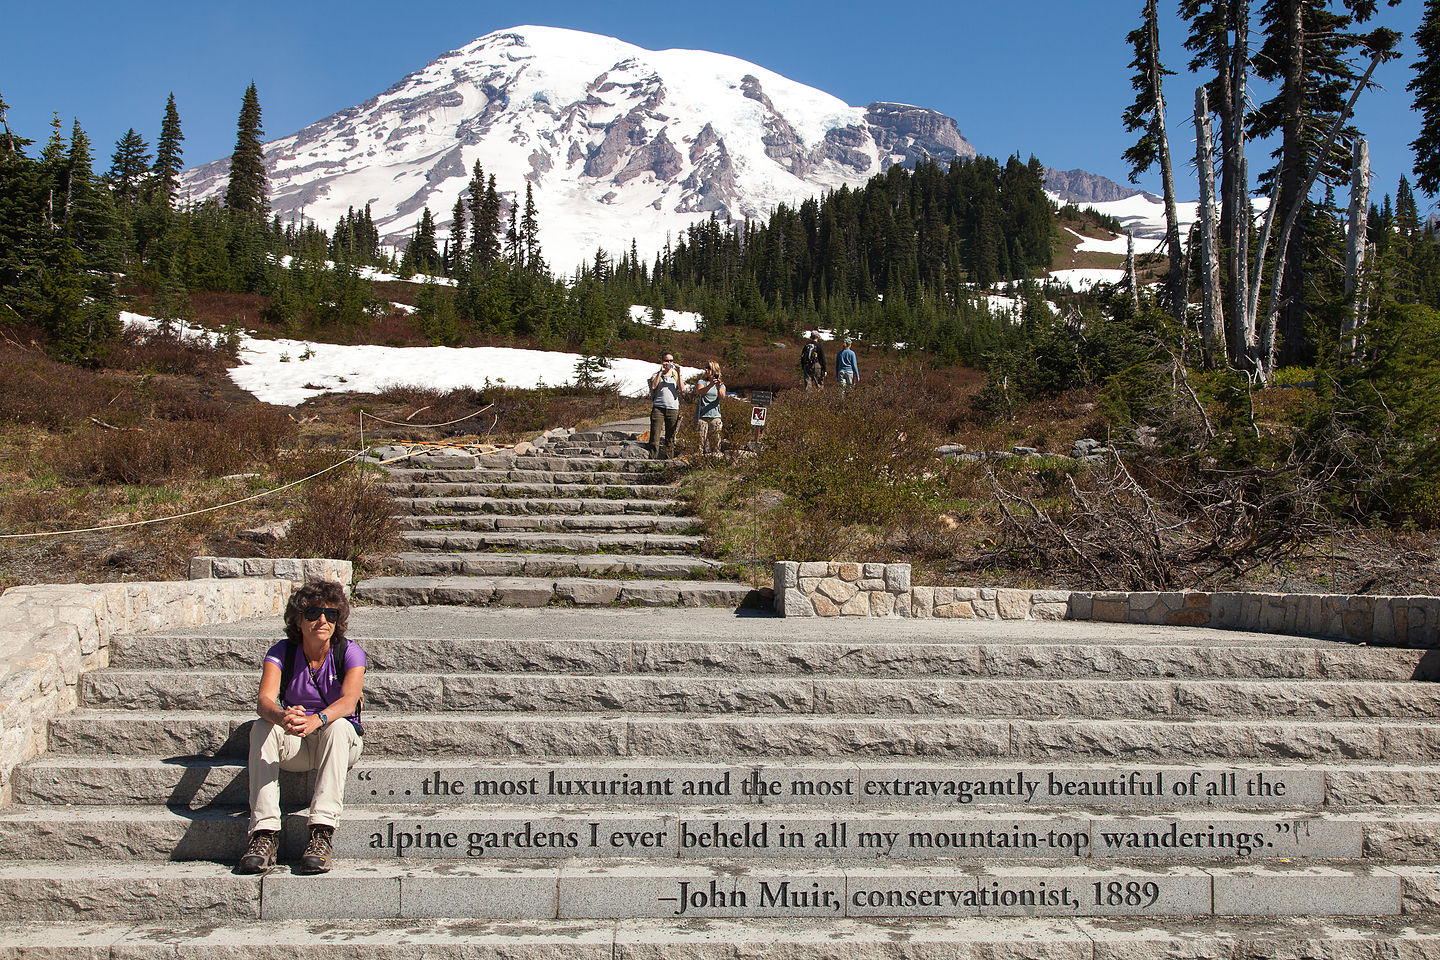 Lolo channeling John Muir for the hike up Mount Rainier